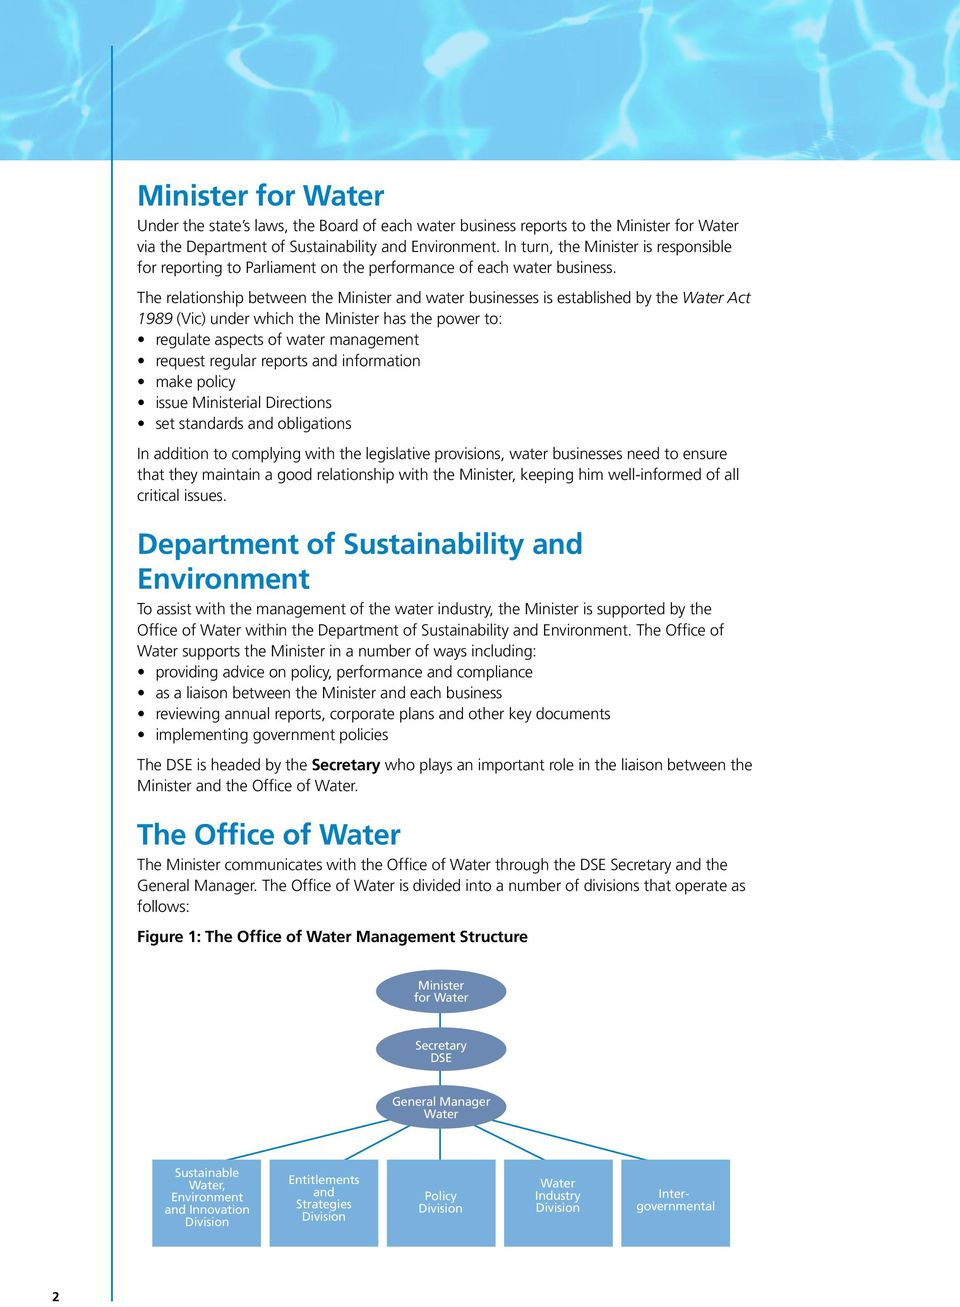 The relationship between the Minister and water businesses is established by the Water Act 1989 (Vic) under which the Minister has the power to: regulate aspects of water management request regular